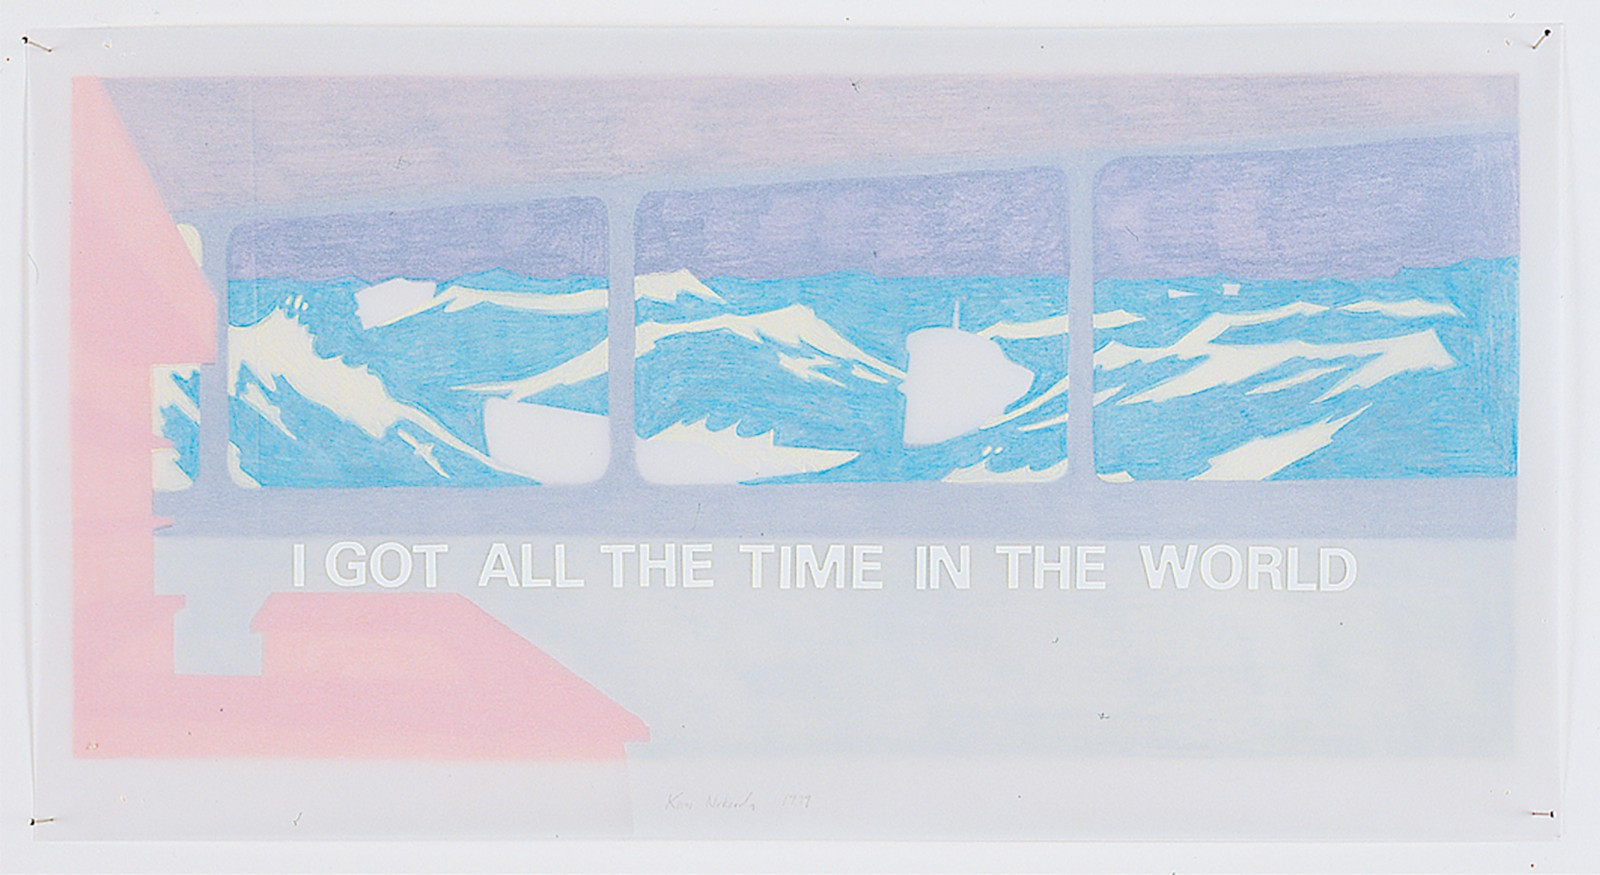 Kim Nekarda: Untitled, 1999, pencil, stickers, 4 layers of tracing paper, 19 x 36 cm